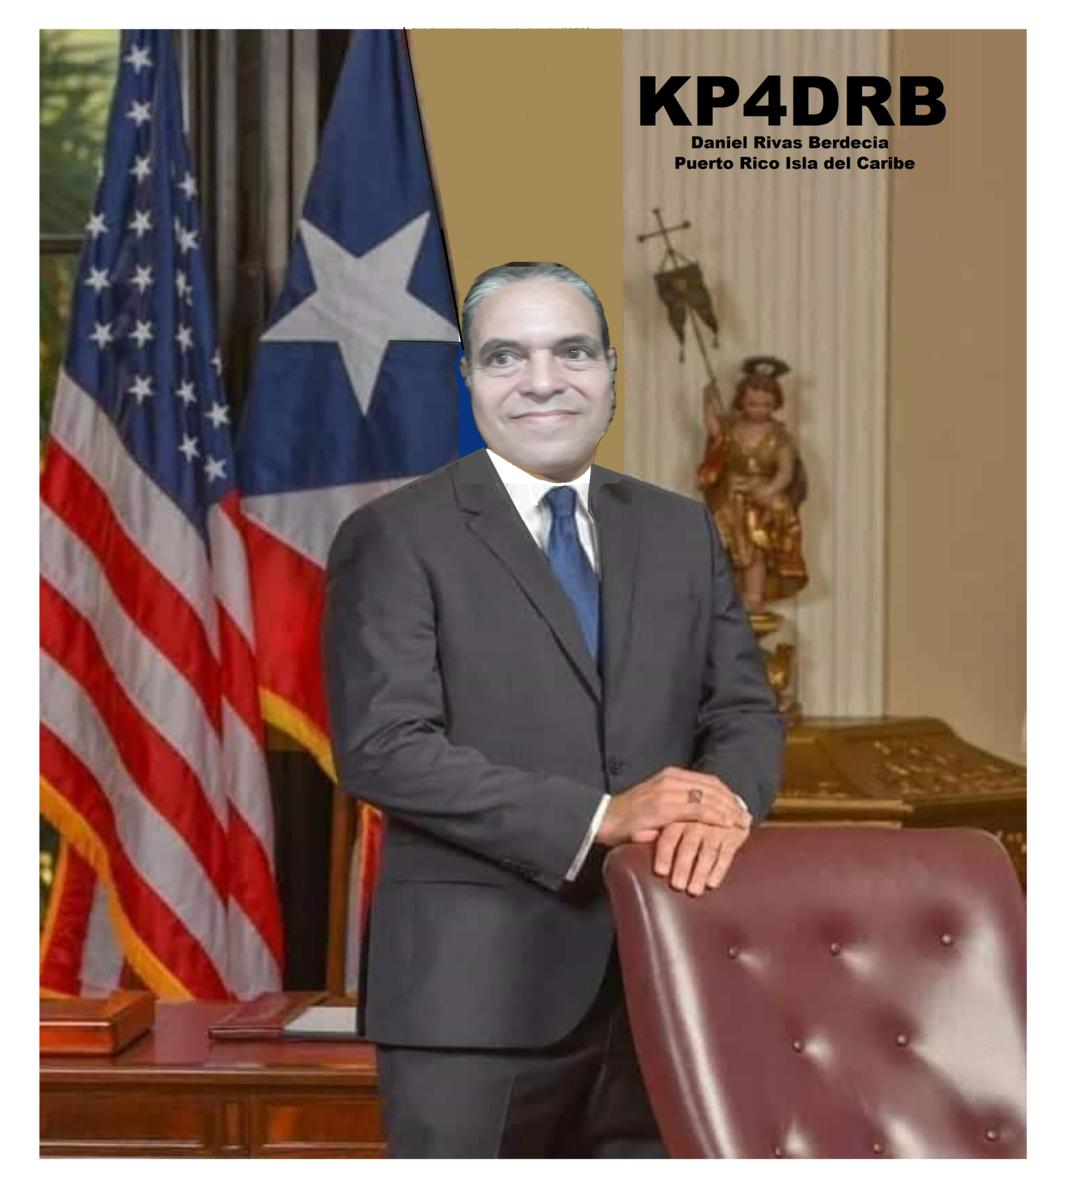 Primary Image for KP4DRB